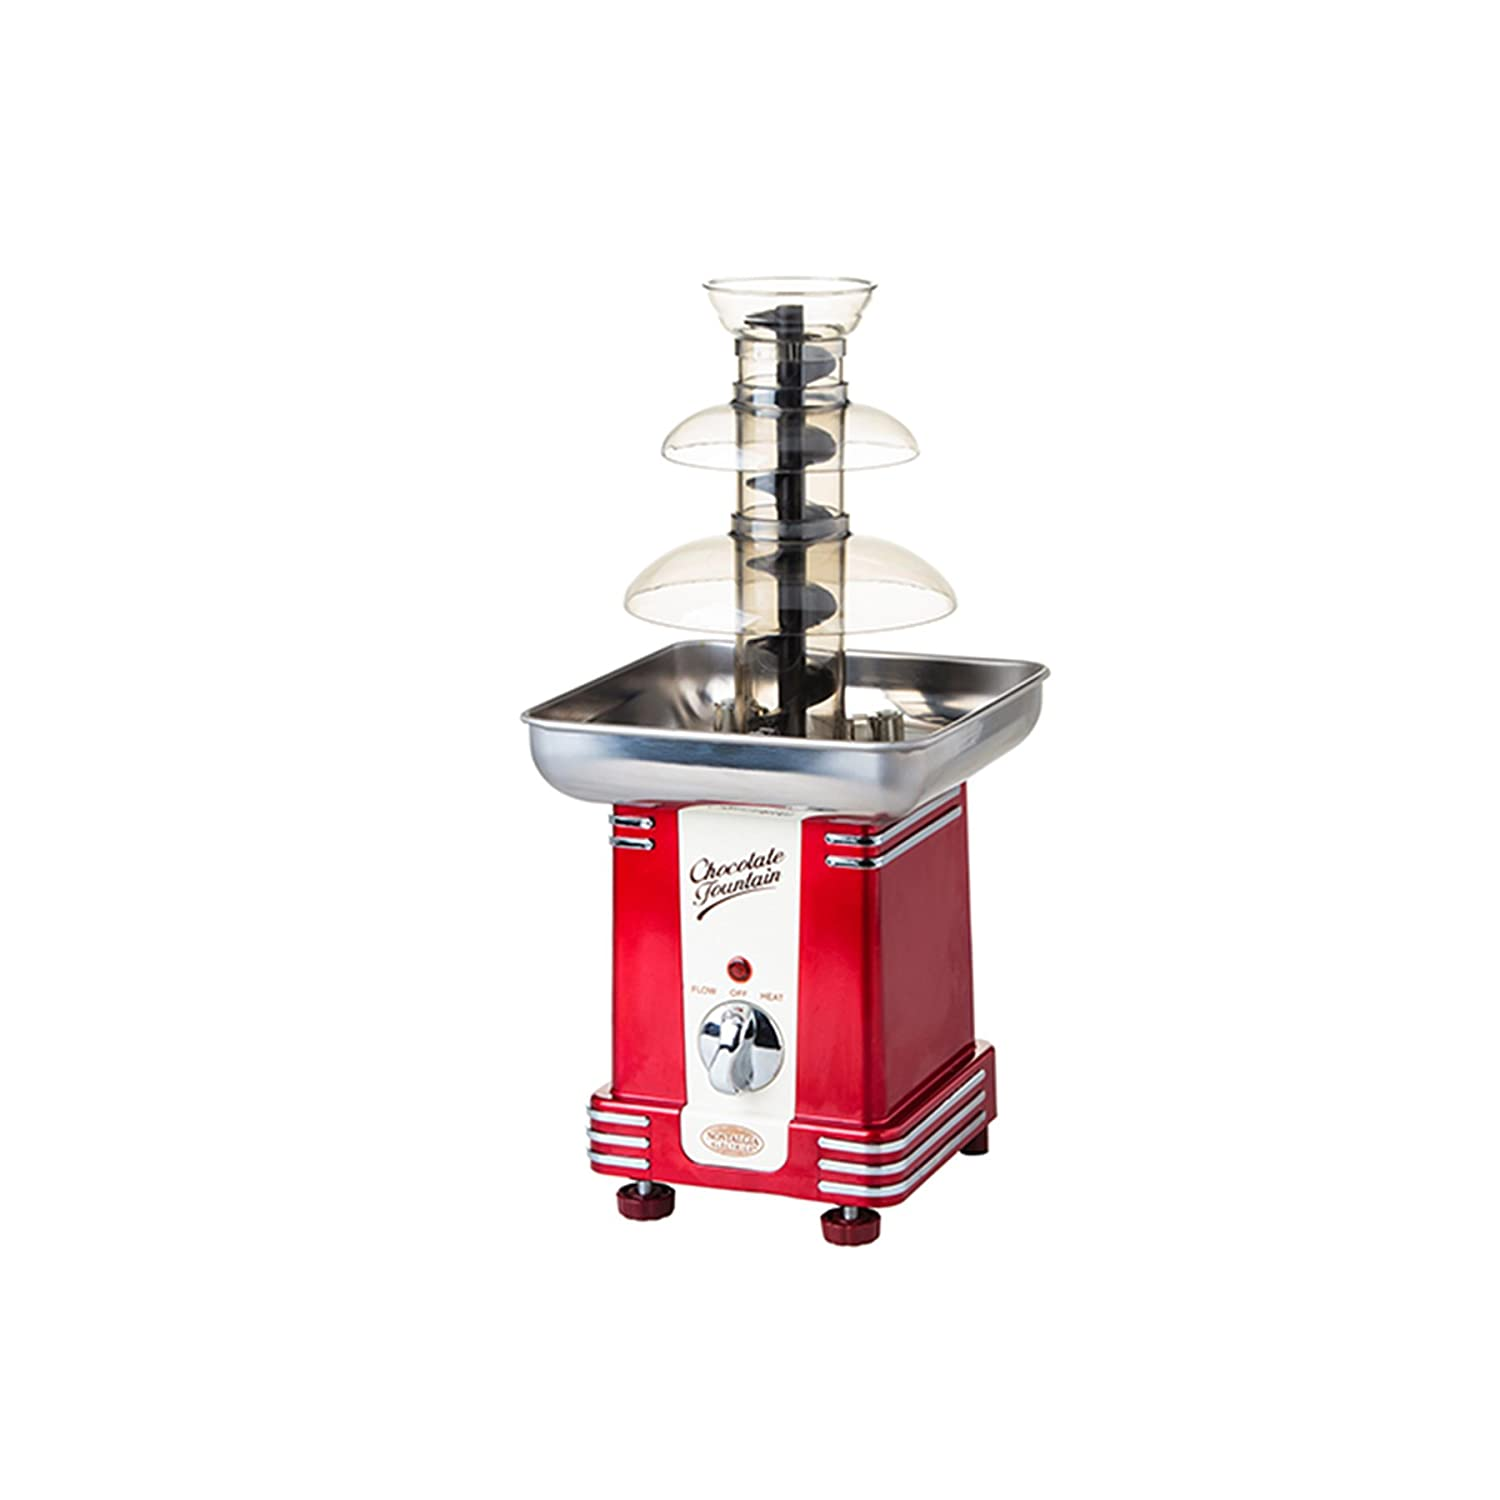 Tek Motion 27' 5-Tier Stainless Steel Chocolate Fondue Fountain LARGE for Big Wedding Party Hotel LEPAC6687